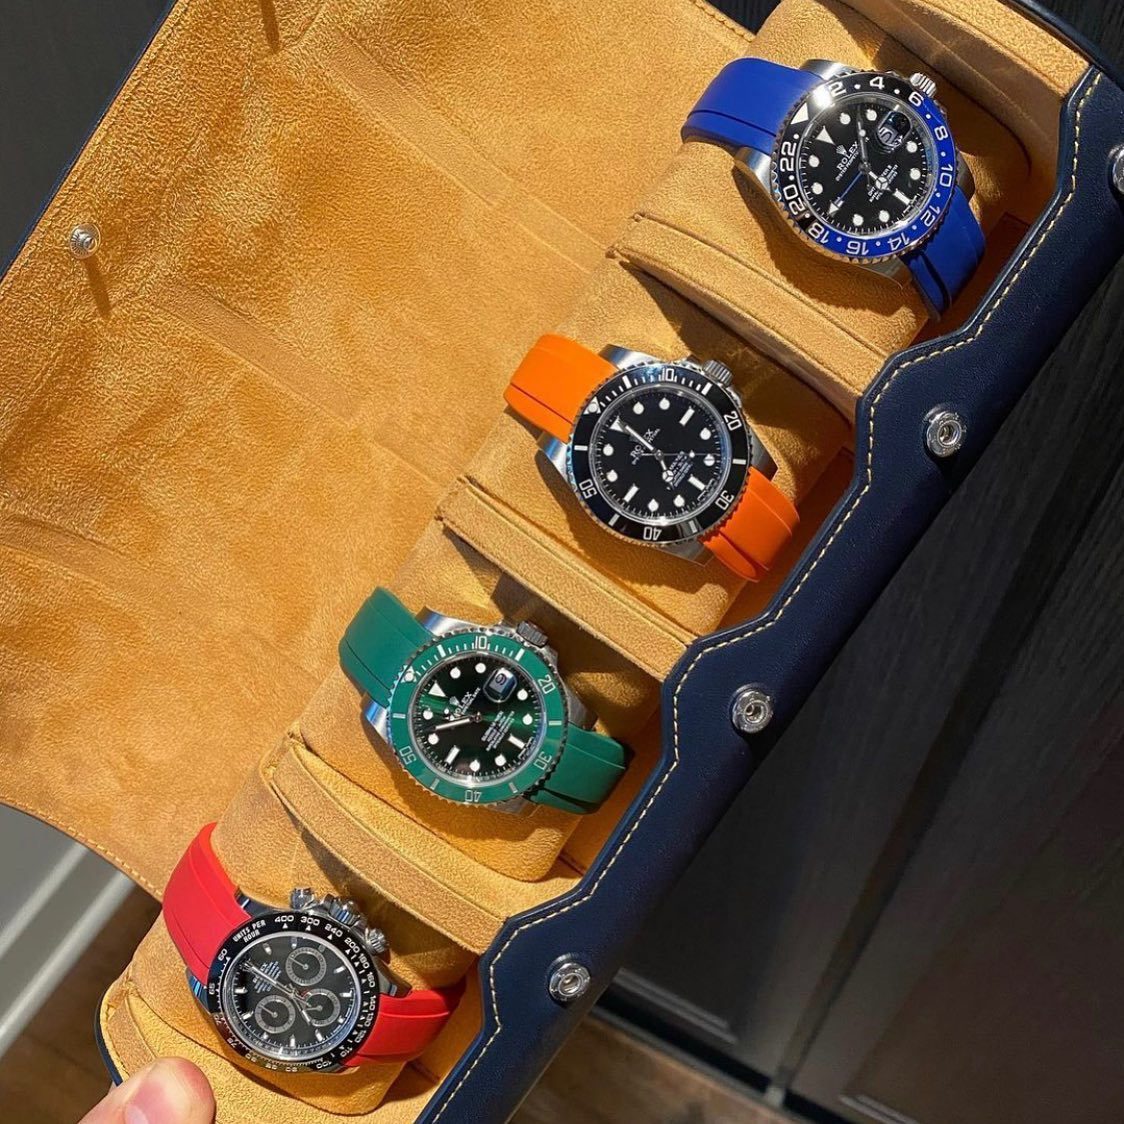 watch roll filled with rolex watches on rubber straps